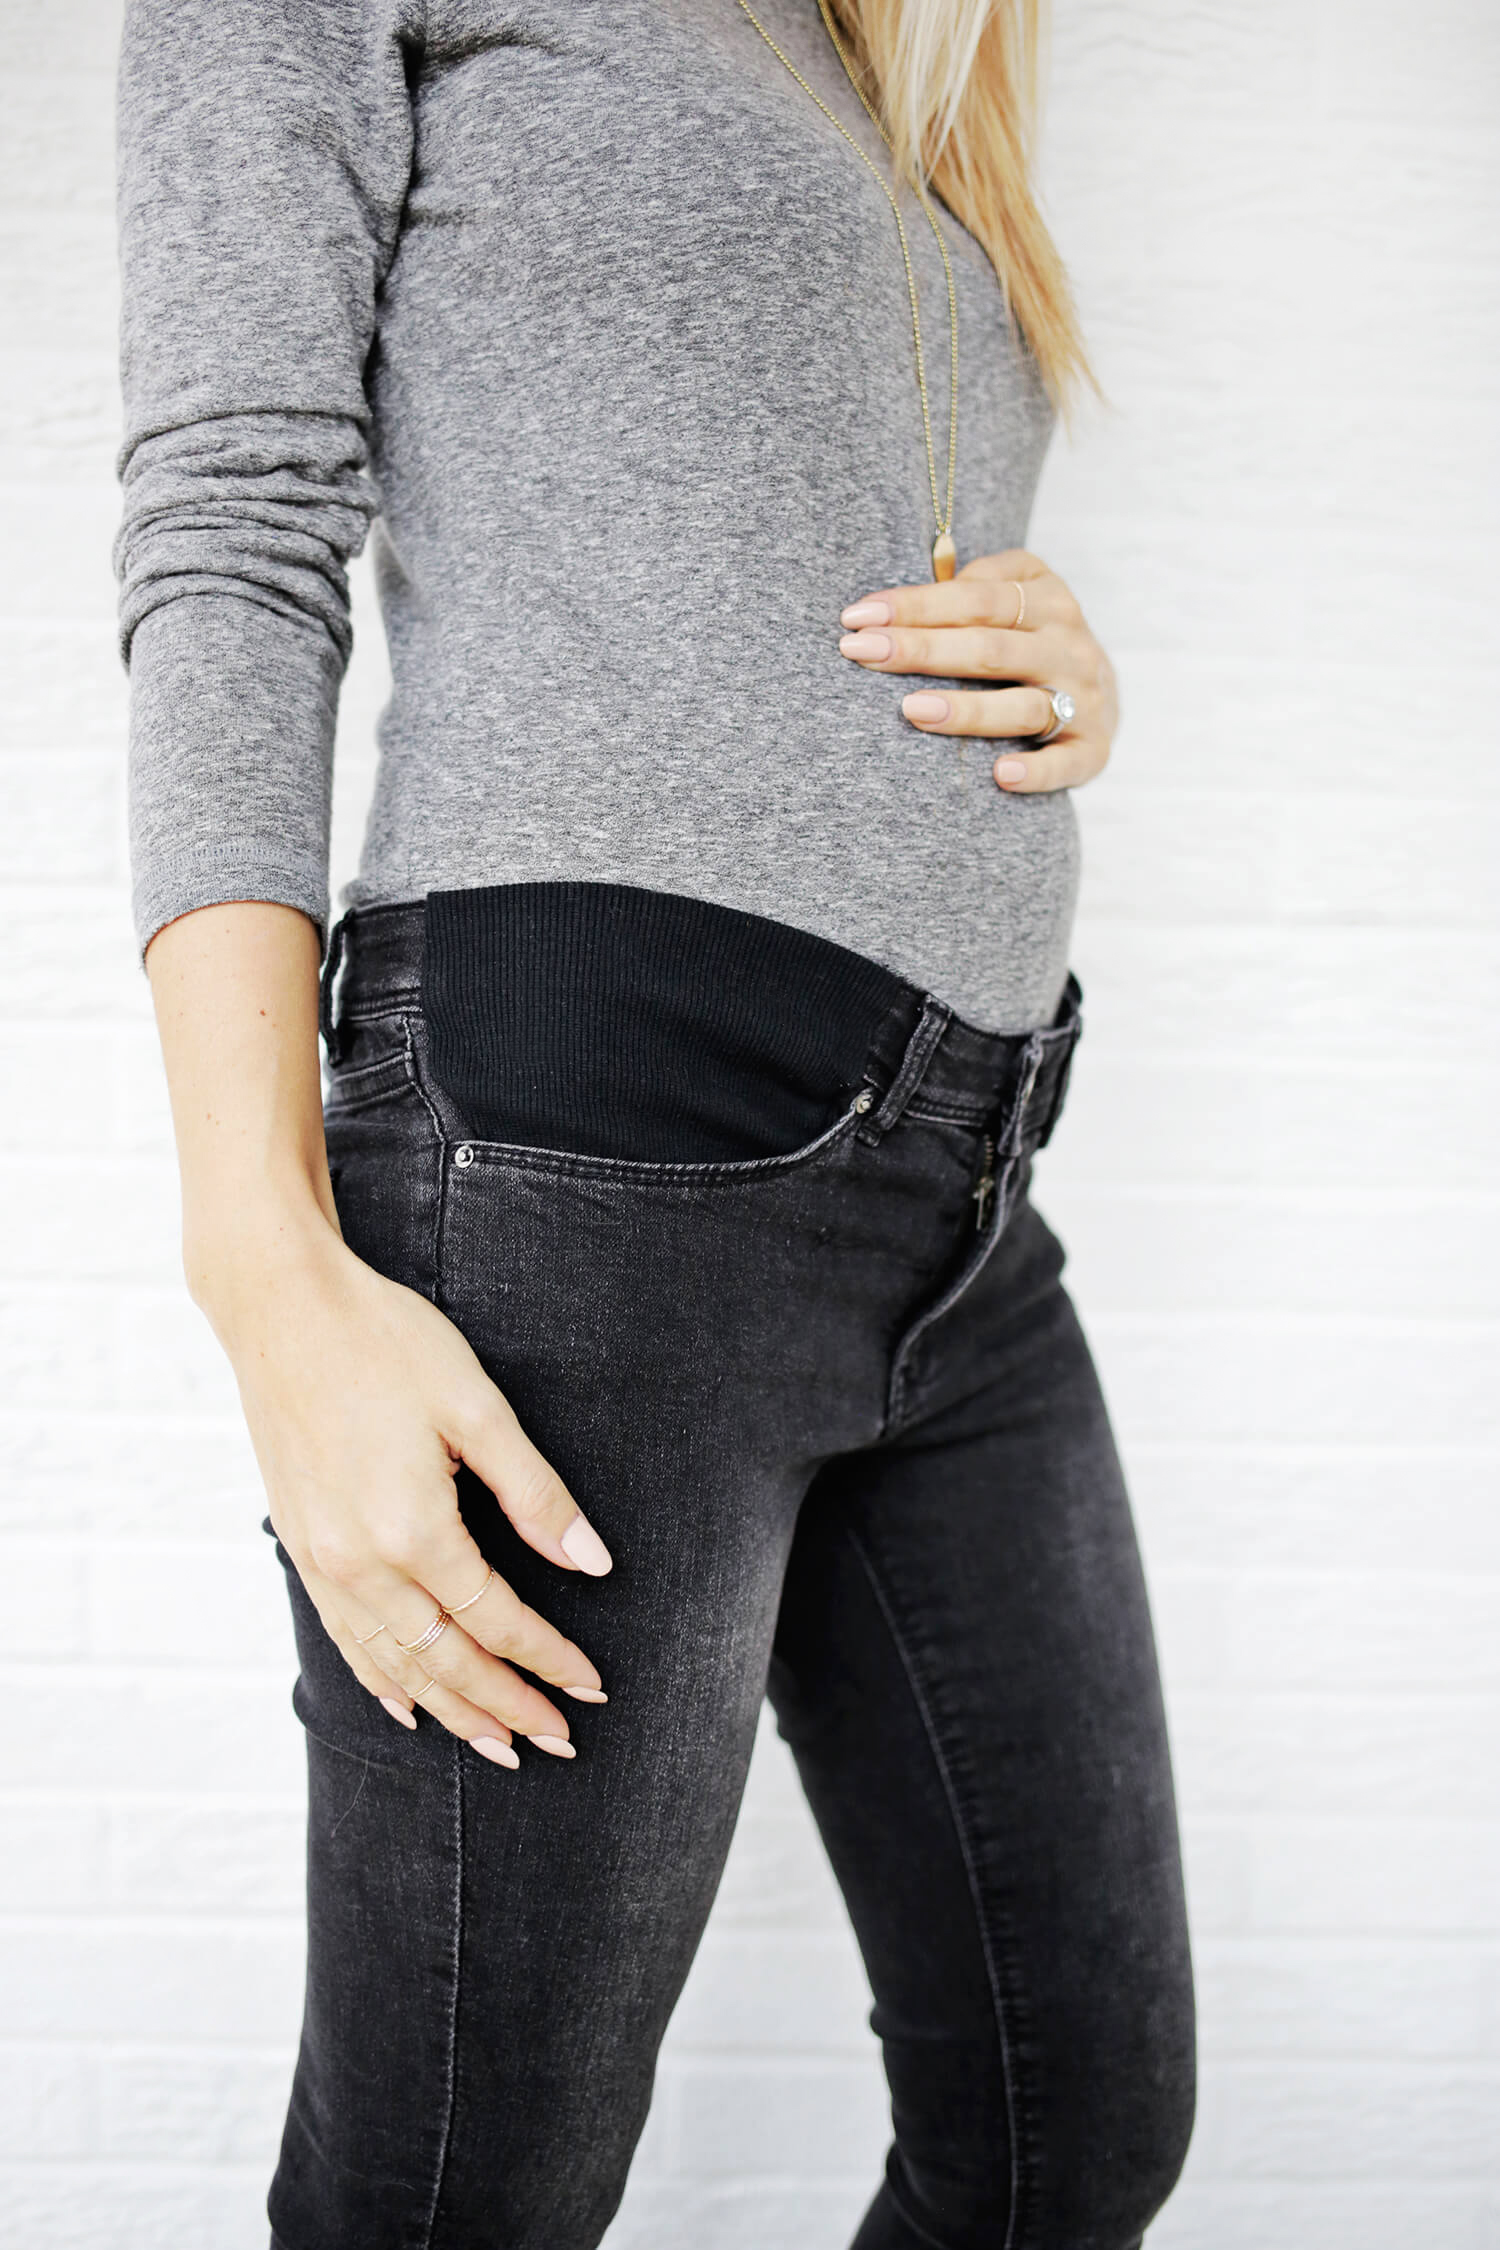 Make Your Own Maternity Jeans! – A Beautiful Mess